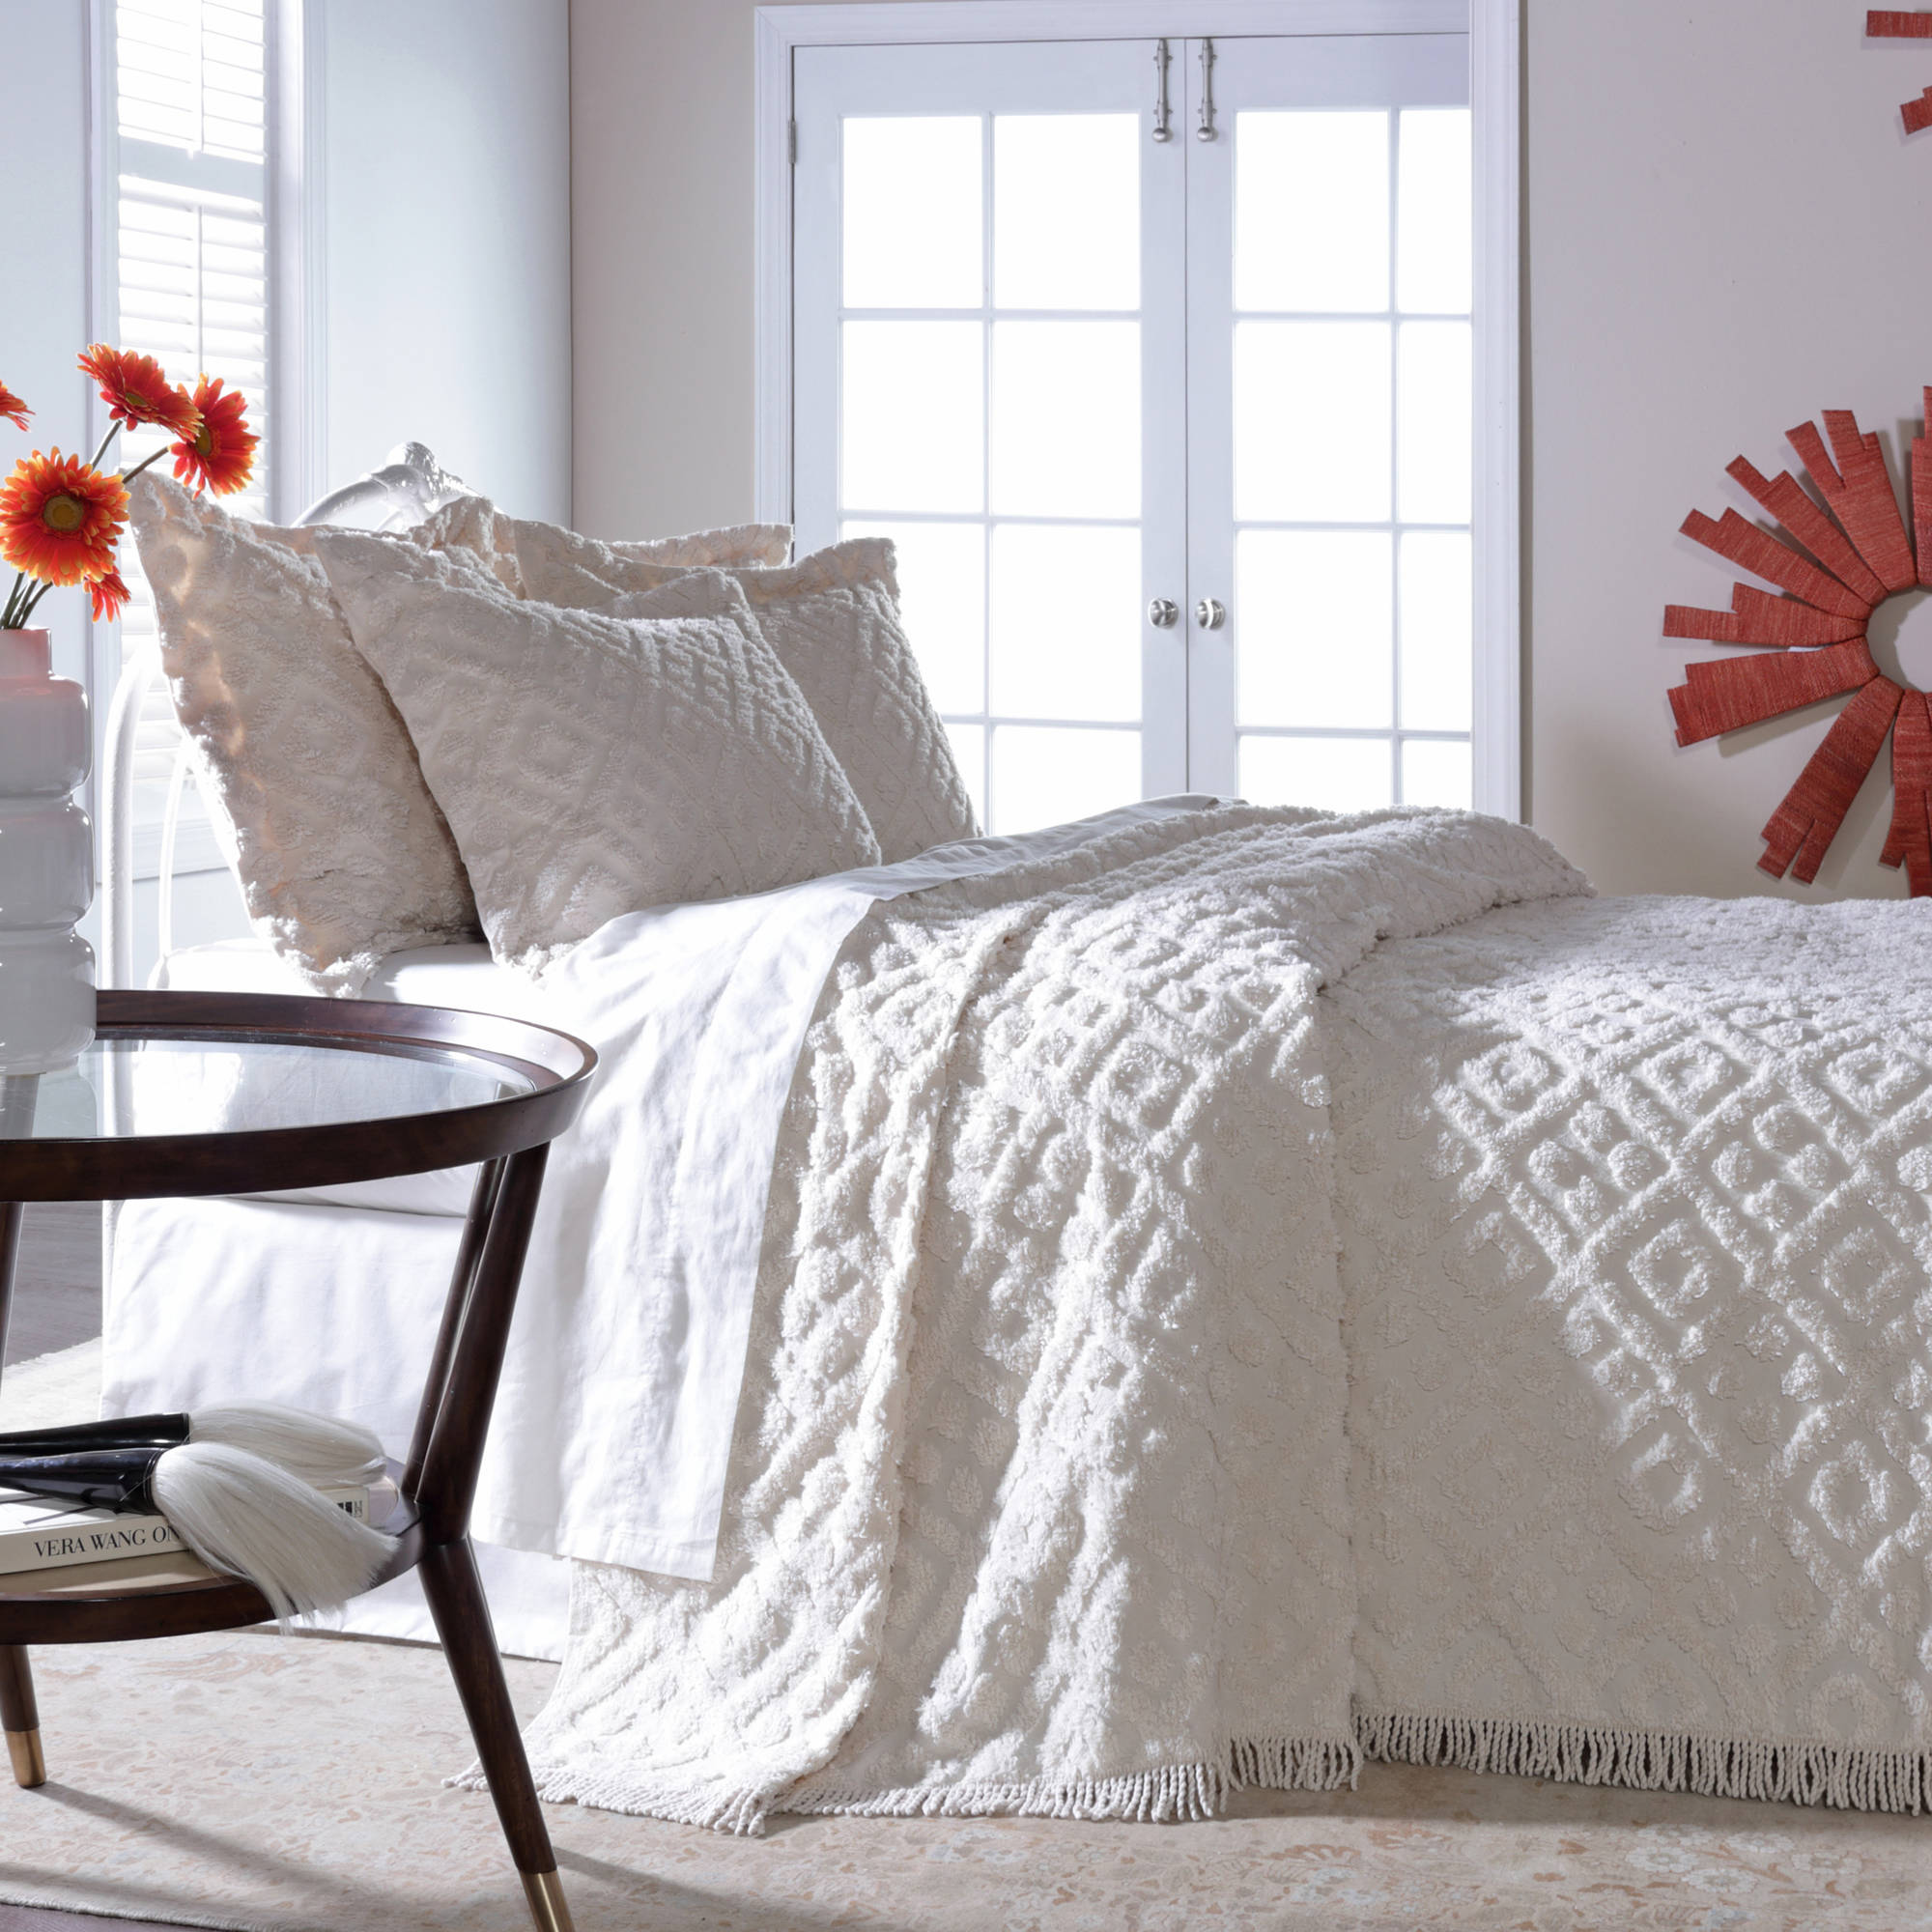 Belle Maison Diamond Tufted Chenille Bedspread